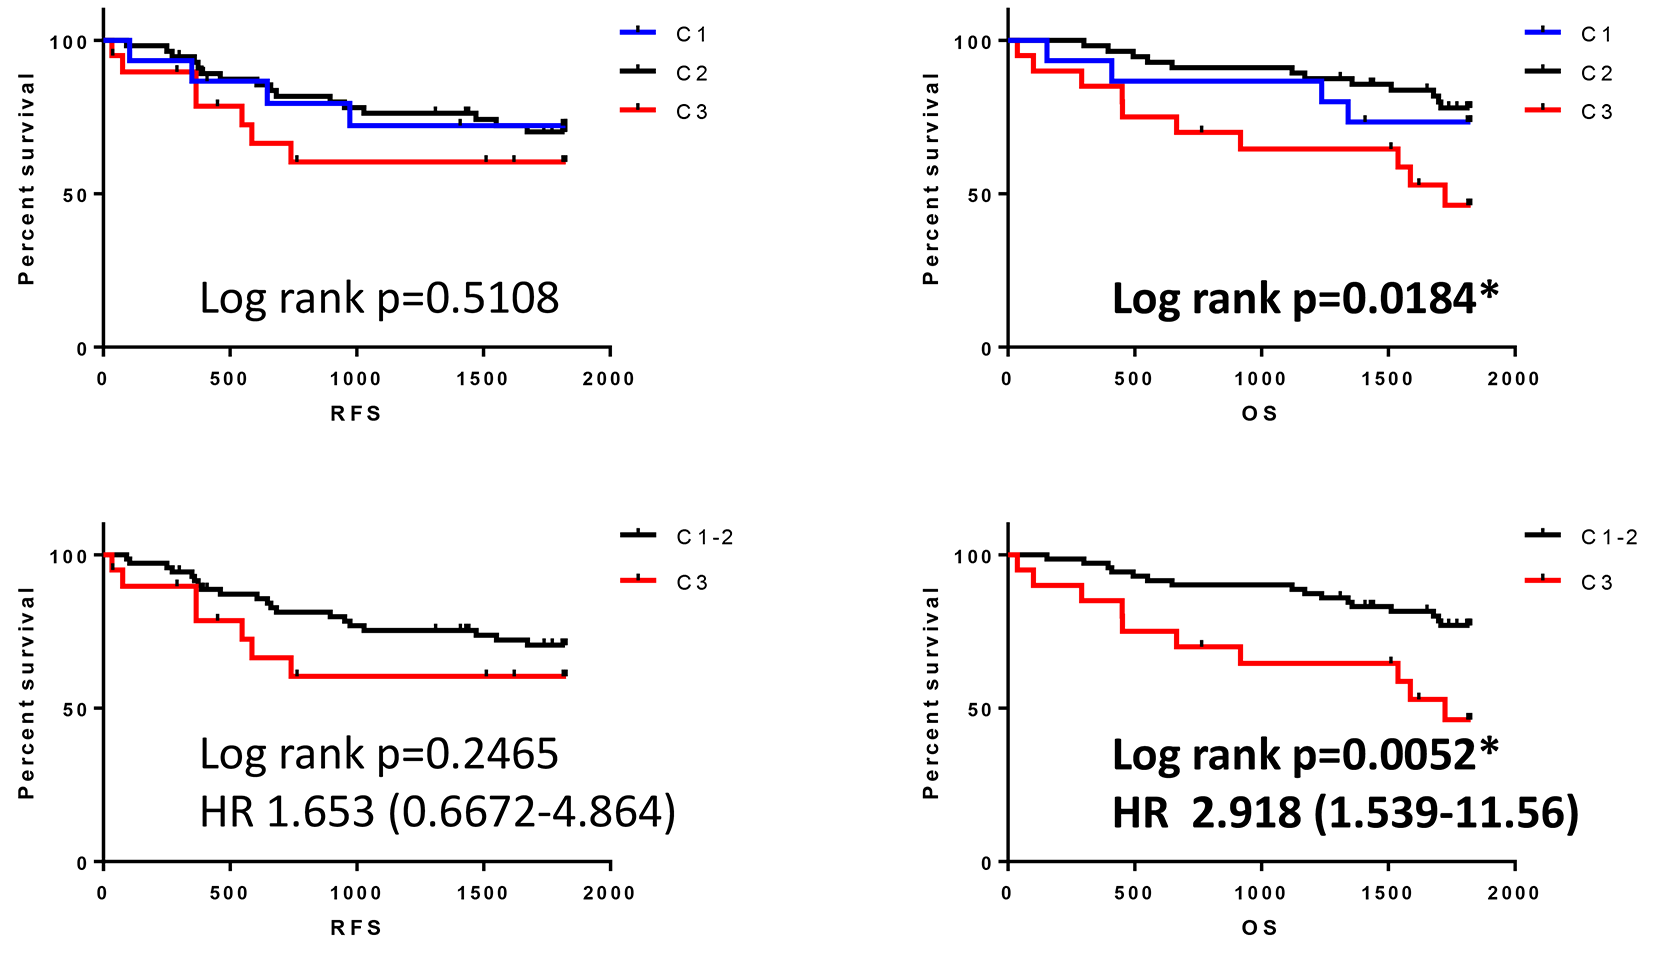 Survival outcomes in patients classified by cluster analysis.